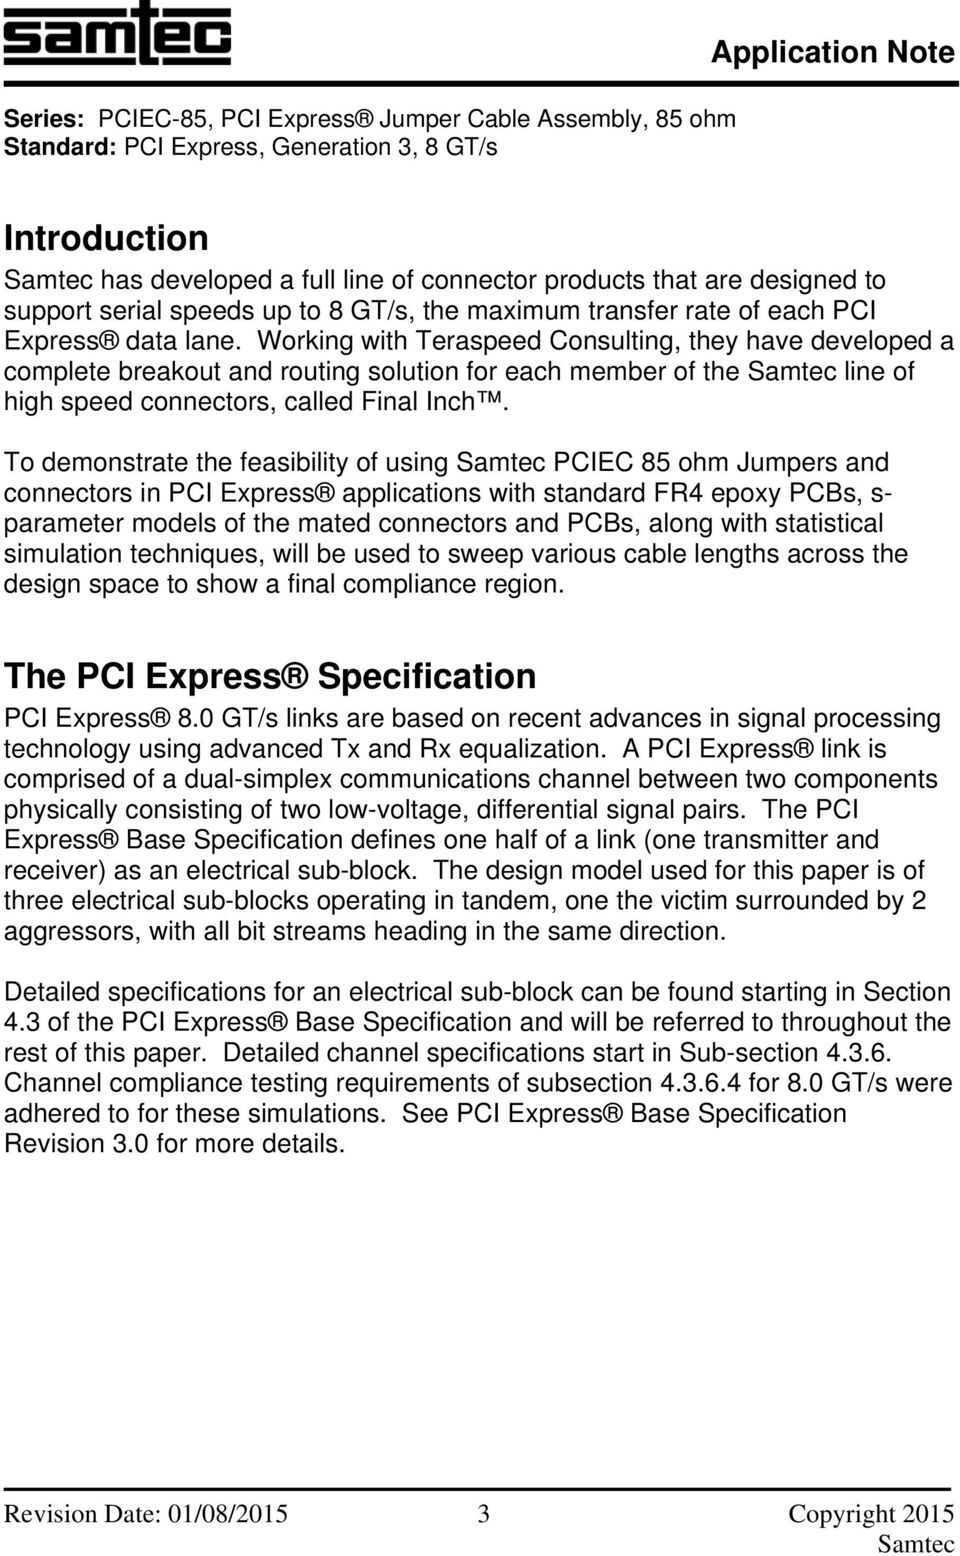 To demonstrate the feasibility of using PCIEC 85 ohm Jumpers and connectors in PCI Express applications with standard FR4 epoxy PCBs, s- parameter models of the mated connectors and PCBs, along with